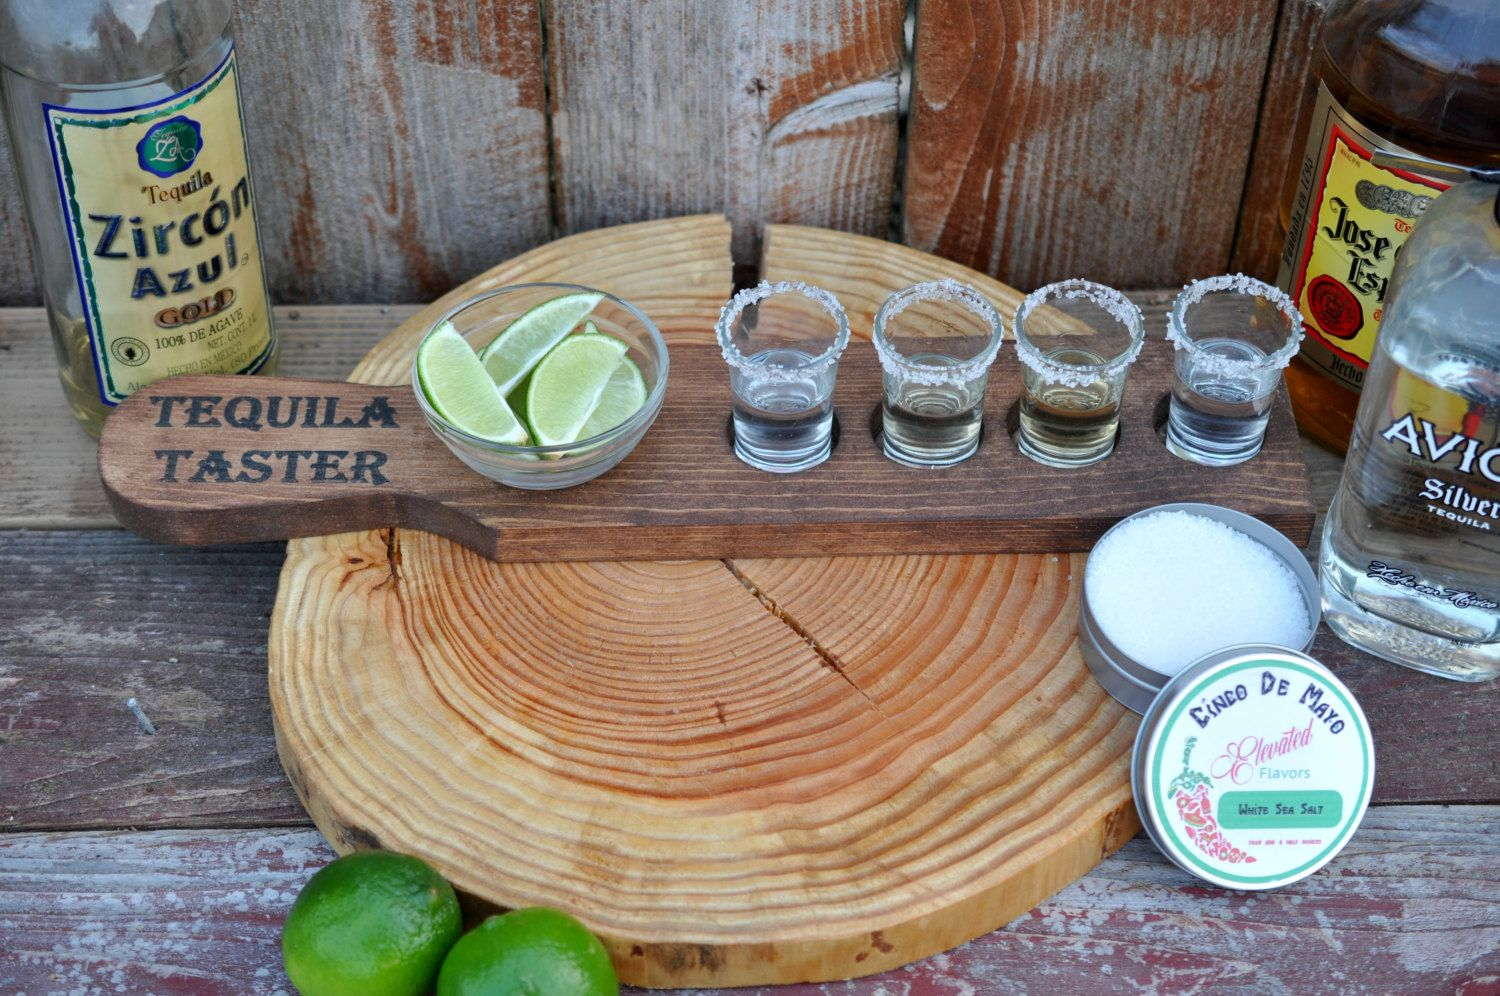 Tequila Tasting Tray Tequila Flight Tray Tequila Shot Glasses Bar Tequila Tasting Holder Tequila Tasting Paddle Cin Tequila Tasting Tequila Shots Tequila